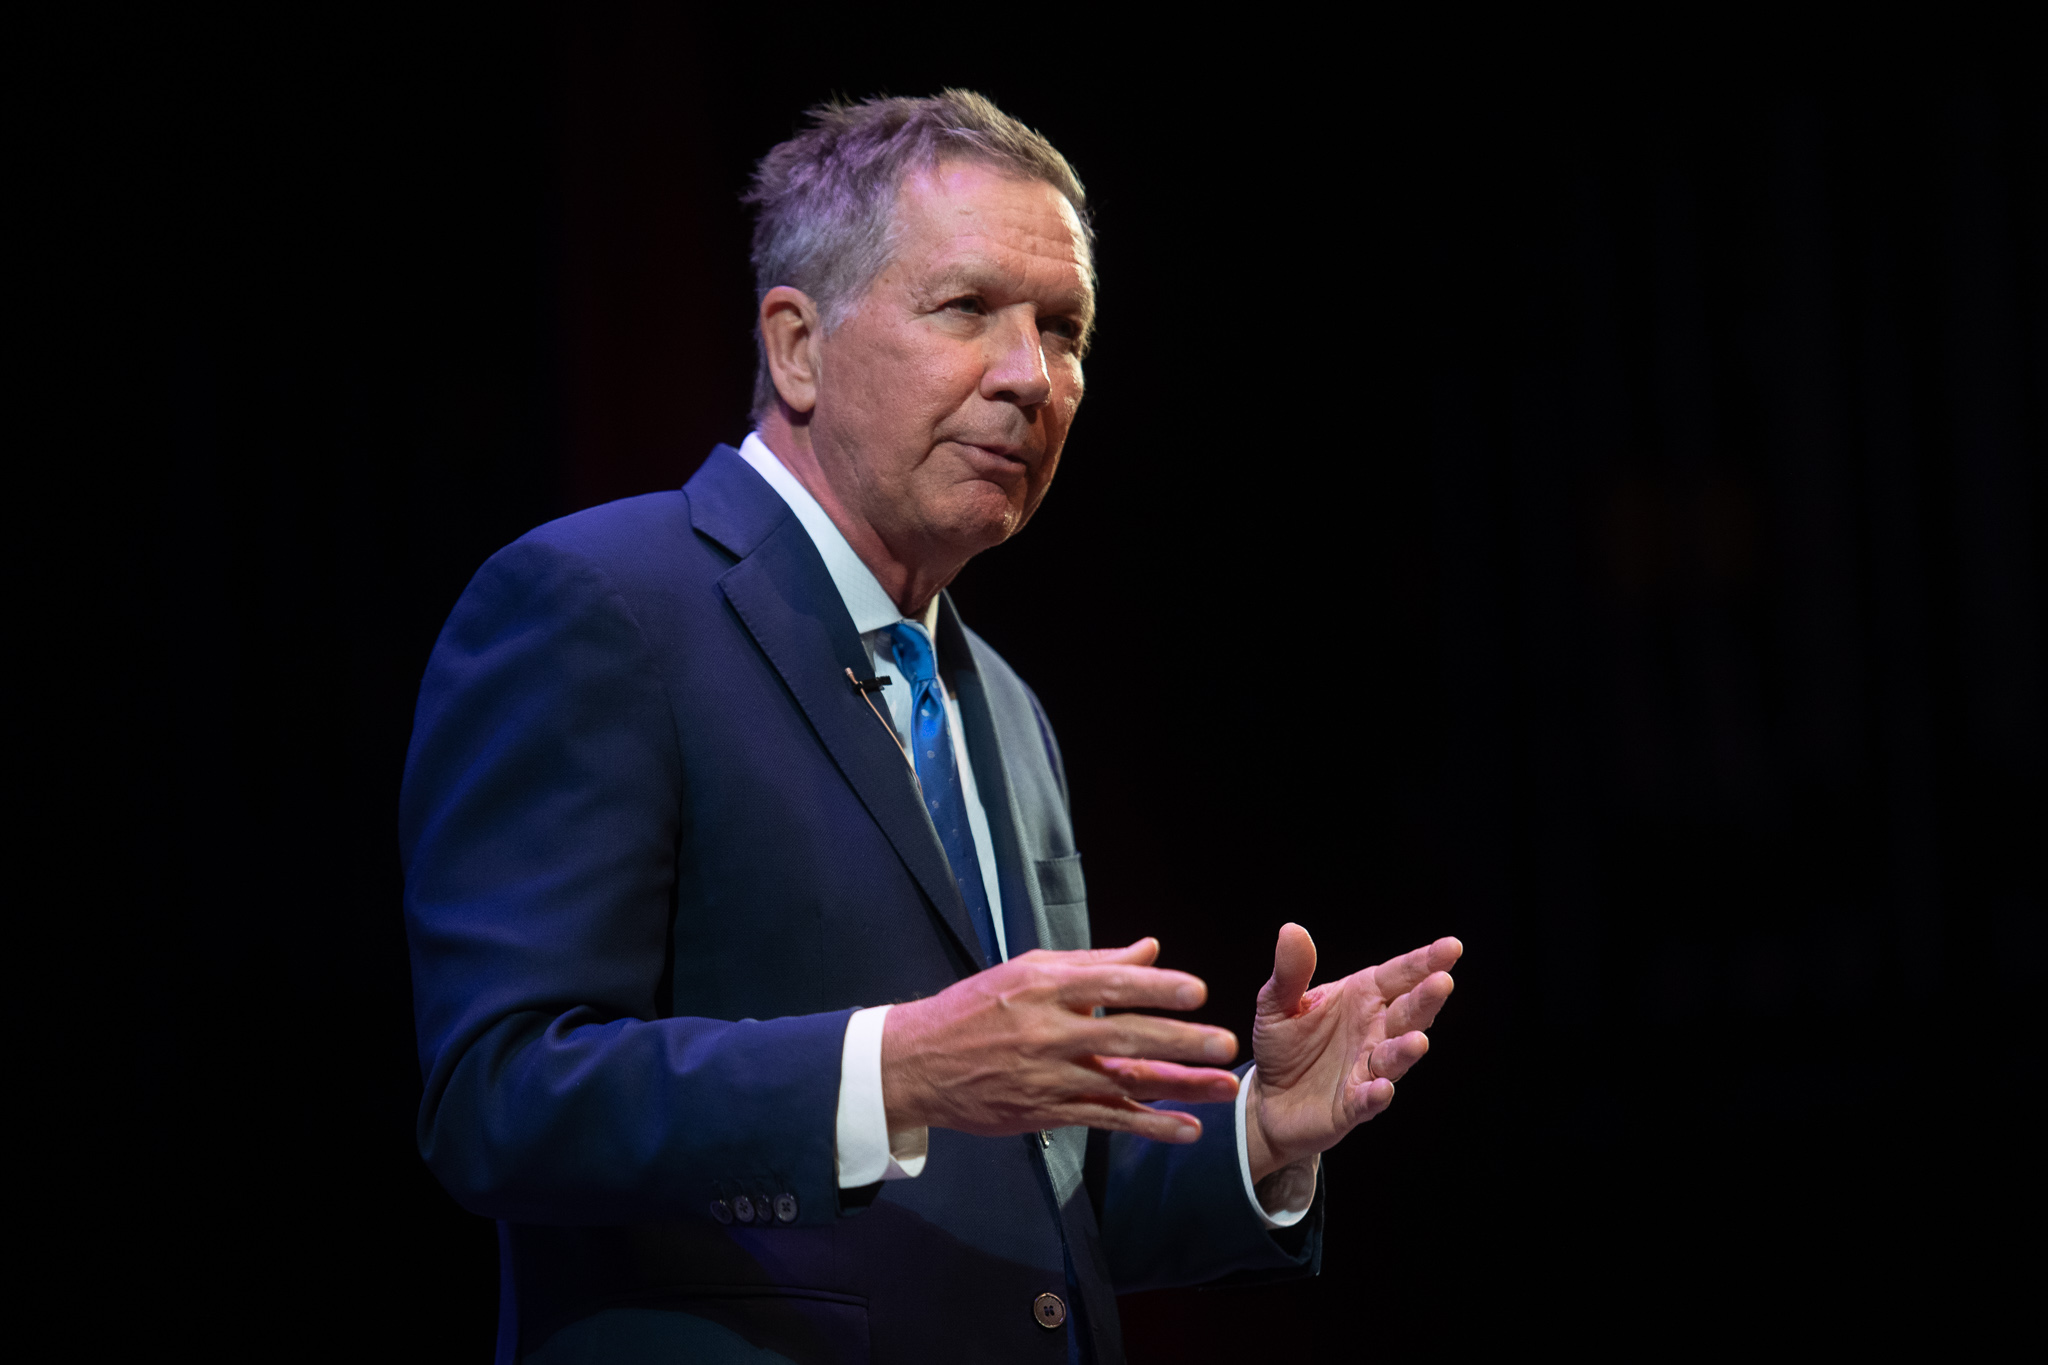 Former Ohio governor John Kasich speaks at Long Island college